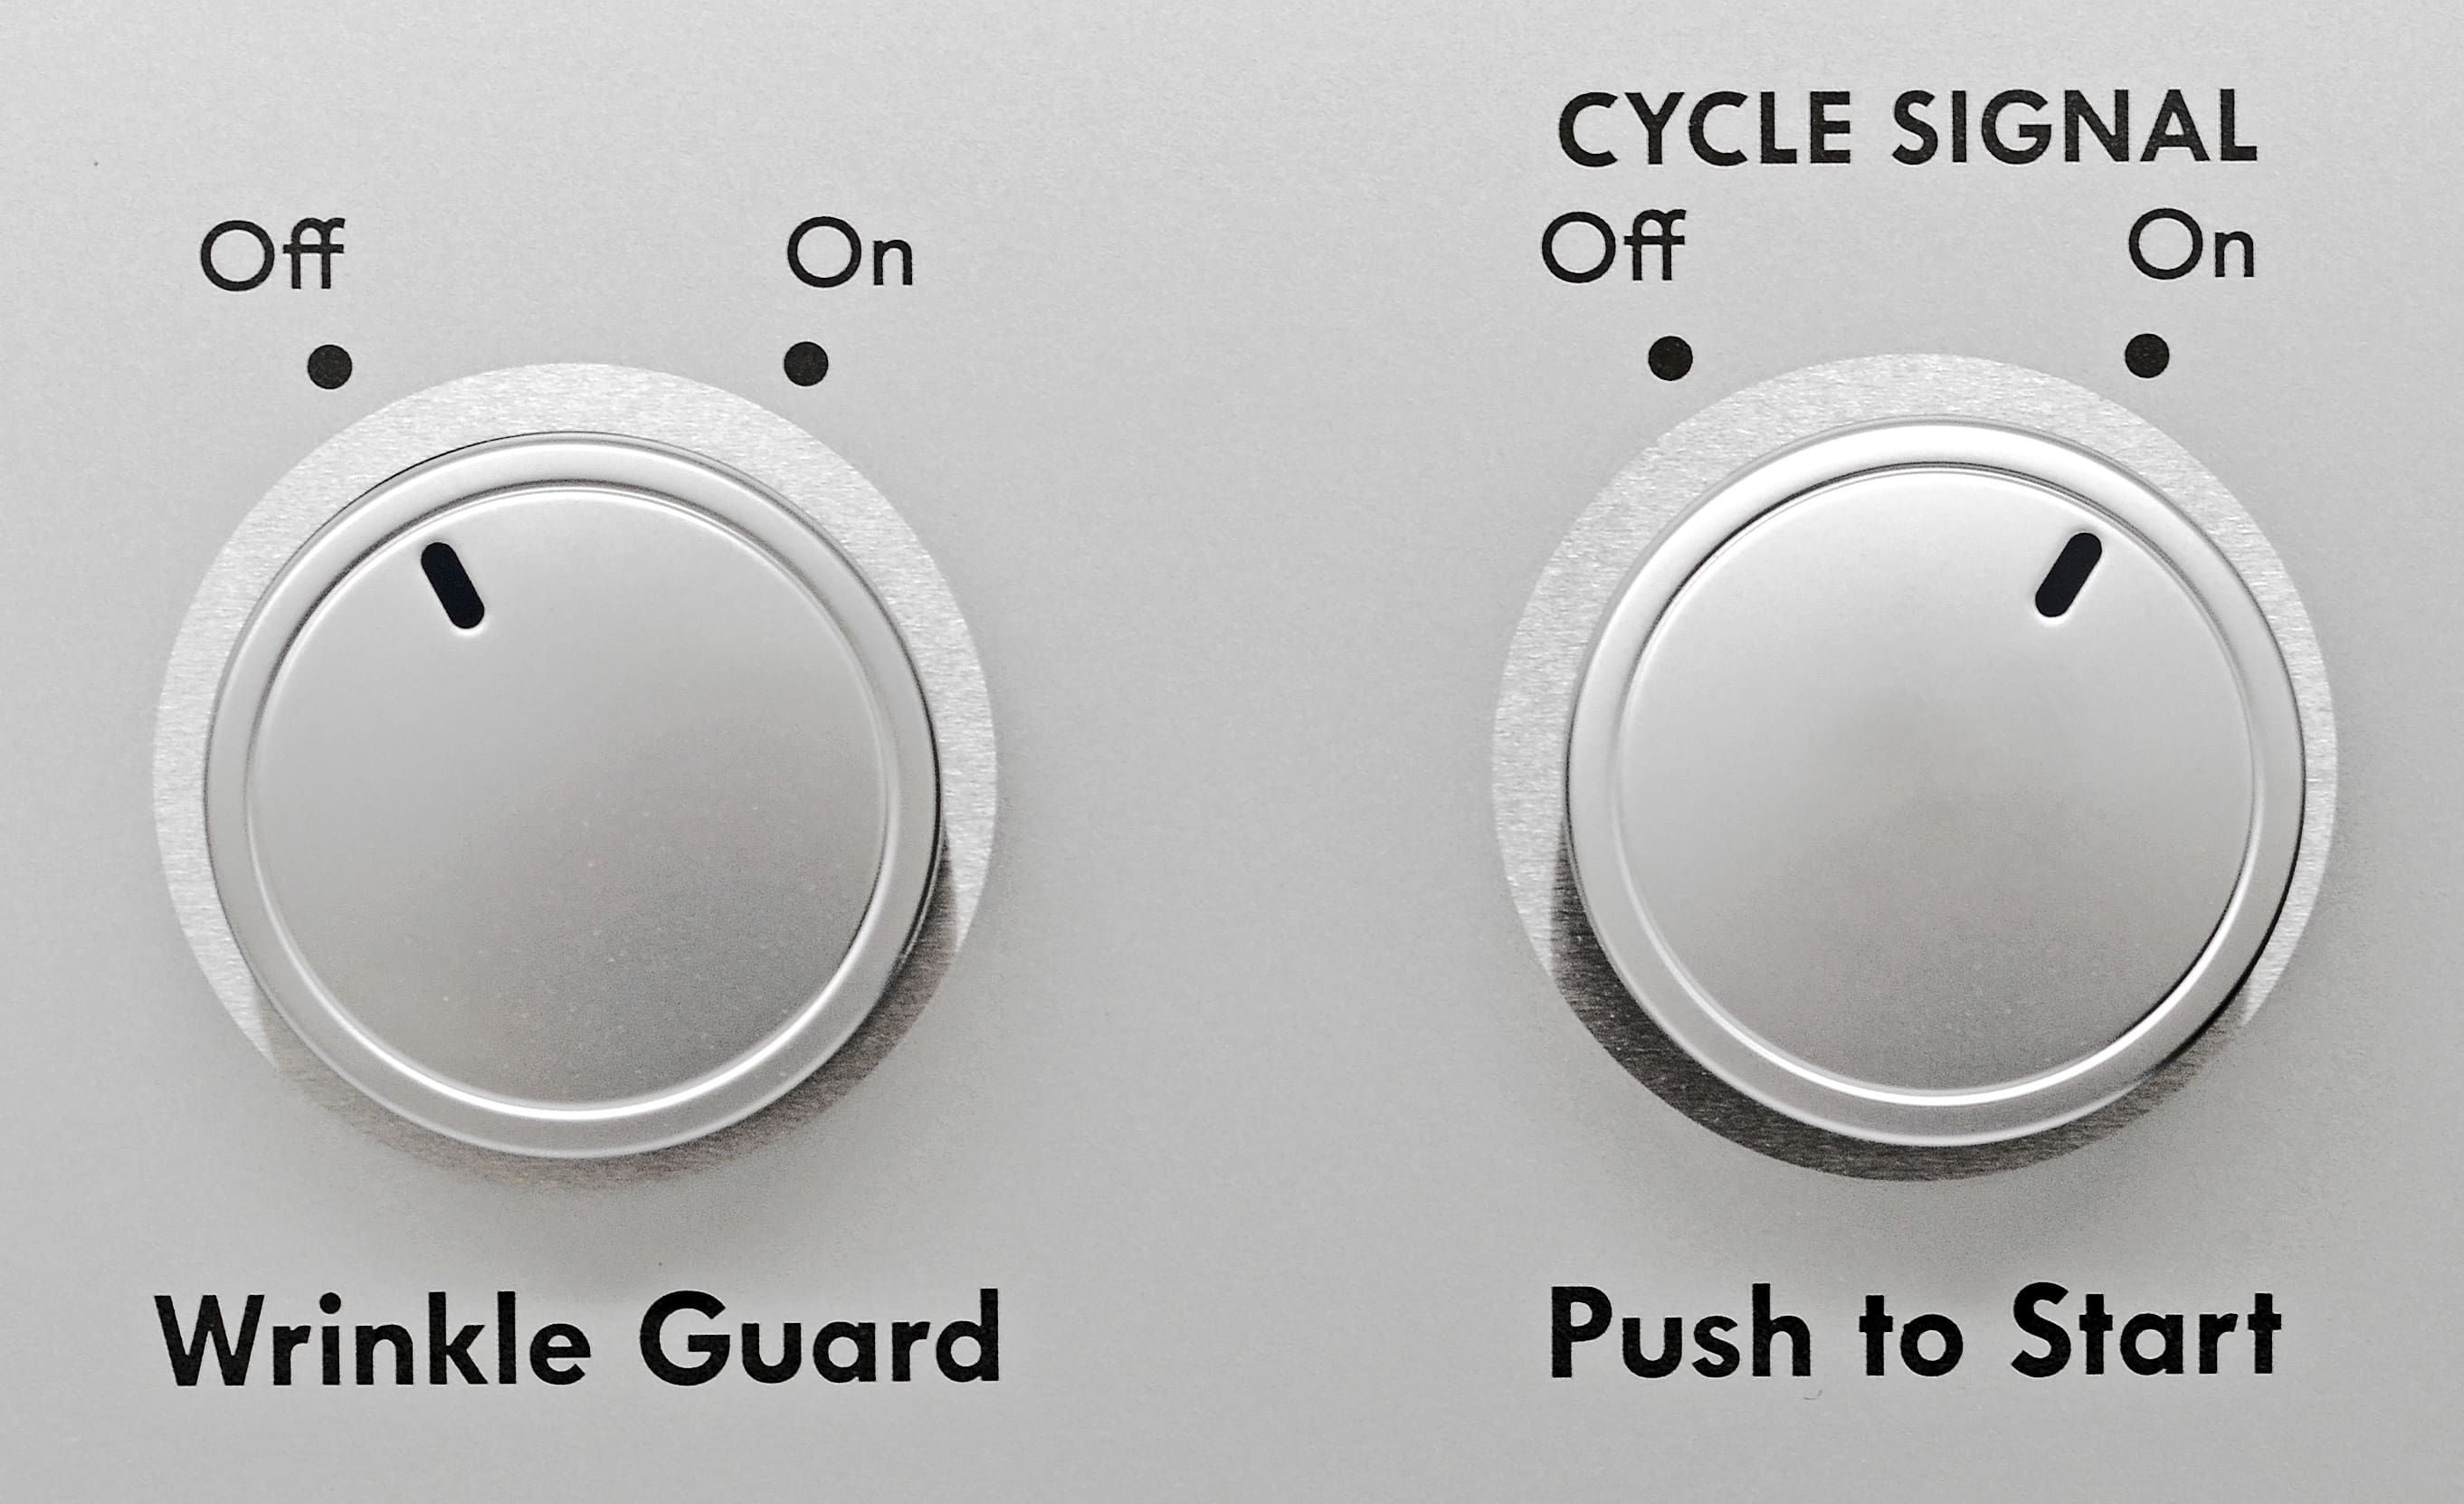 On or off, wrinkle guard or not... The Kenmore 65132's minimal features keep controls very basic.